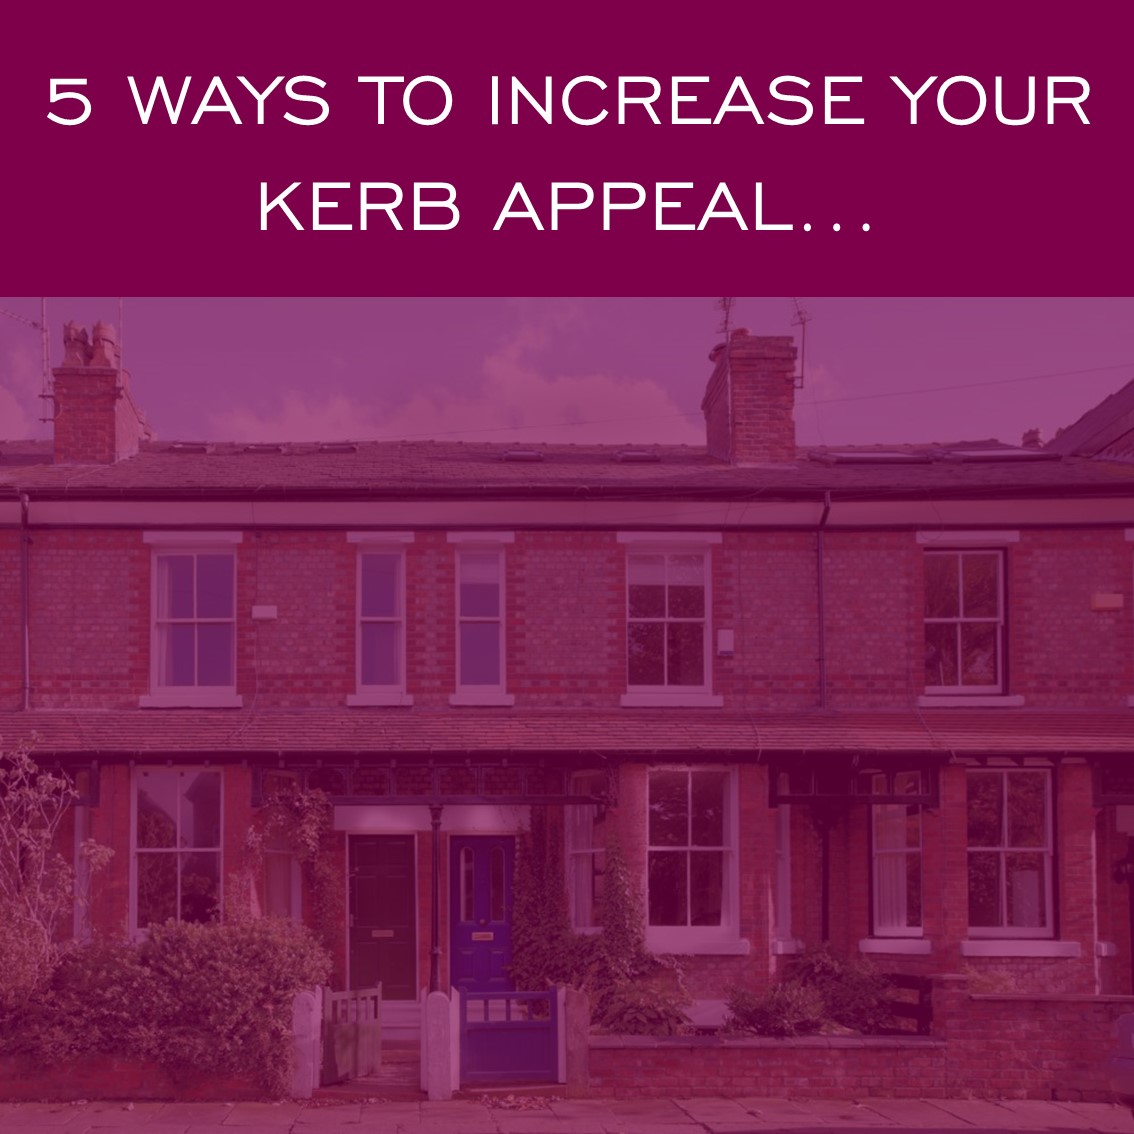 Kerb Appeal  - How to increase your kerb appeal